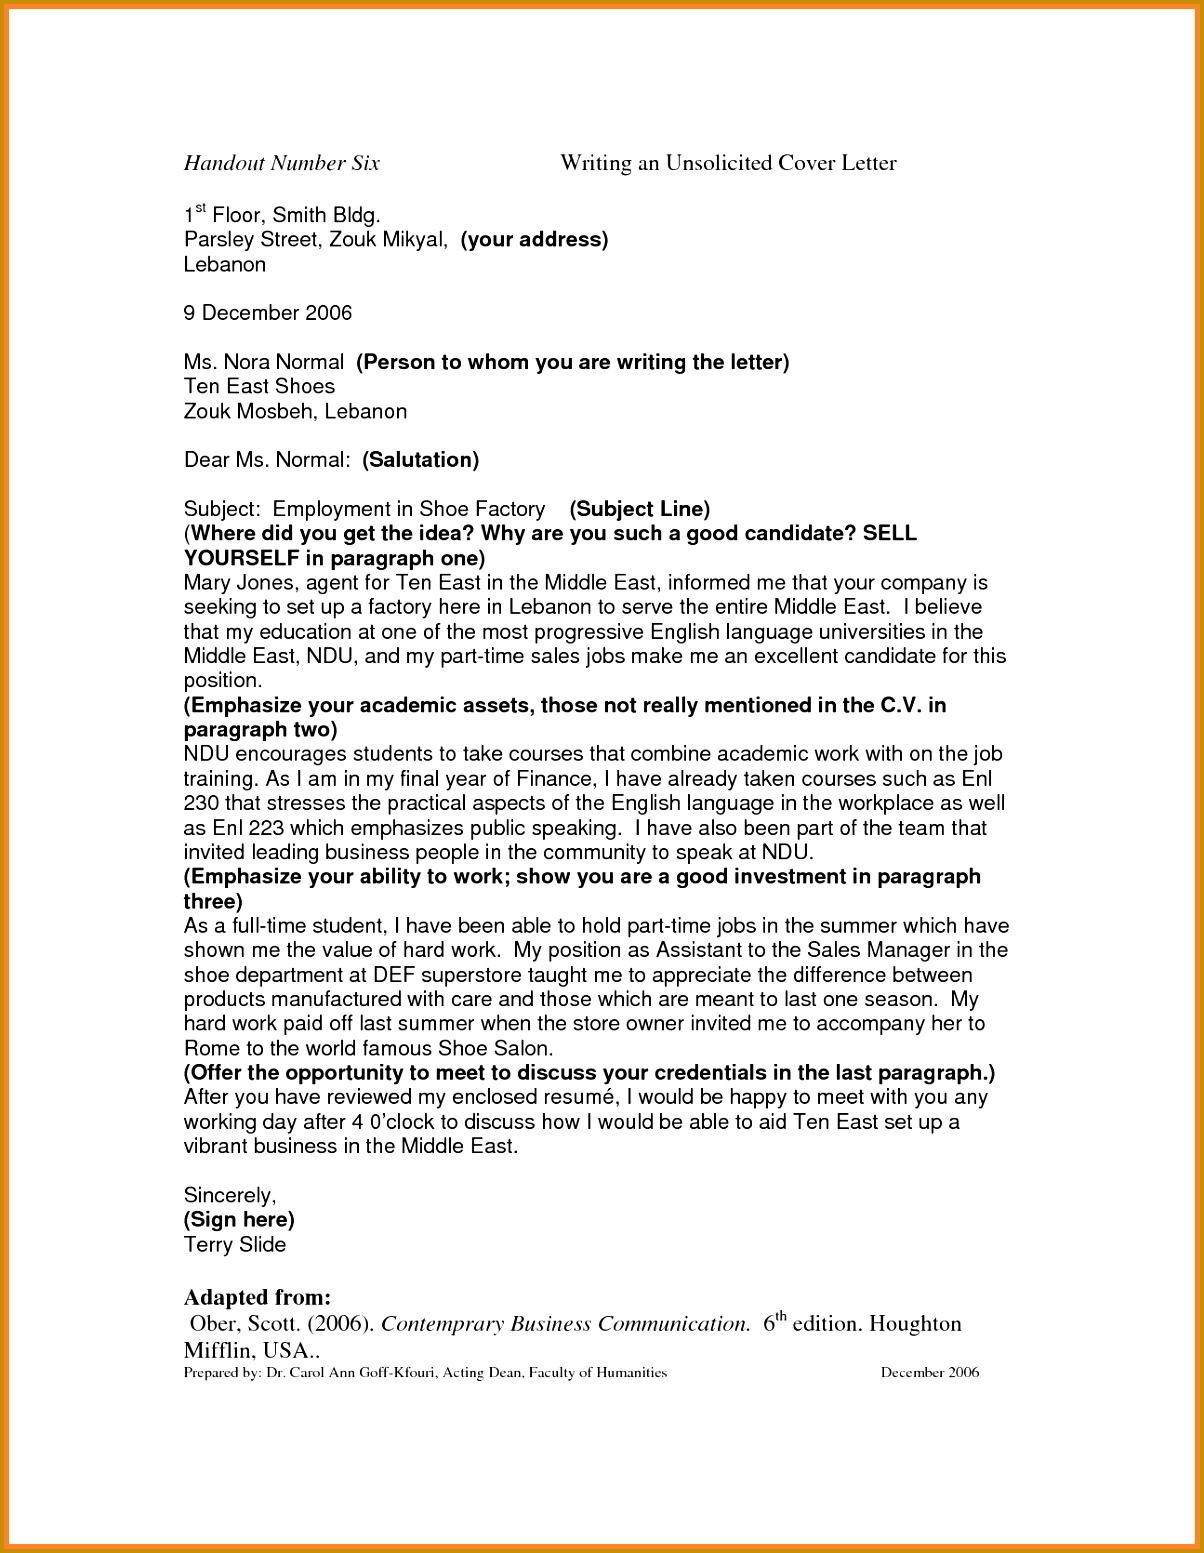 Occupational Therapy Assistant Cover Letter Sample 15531204